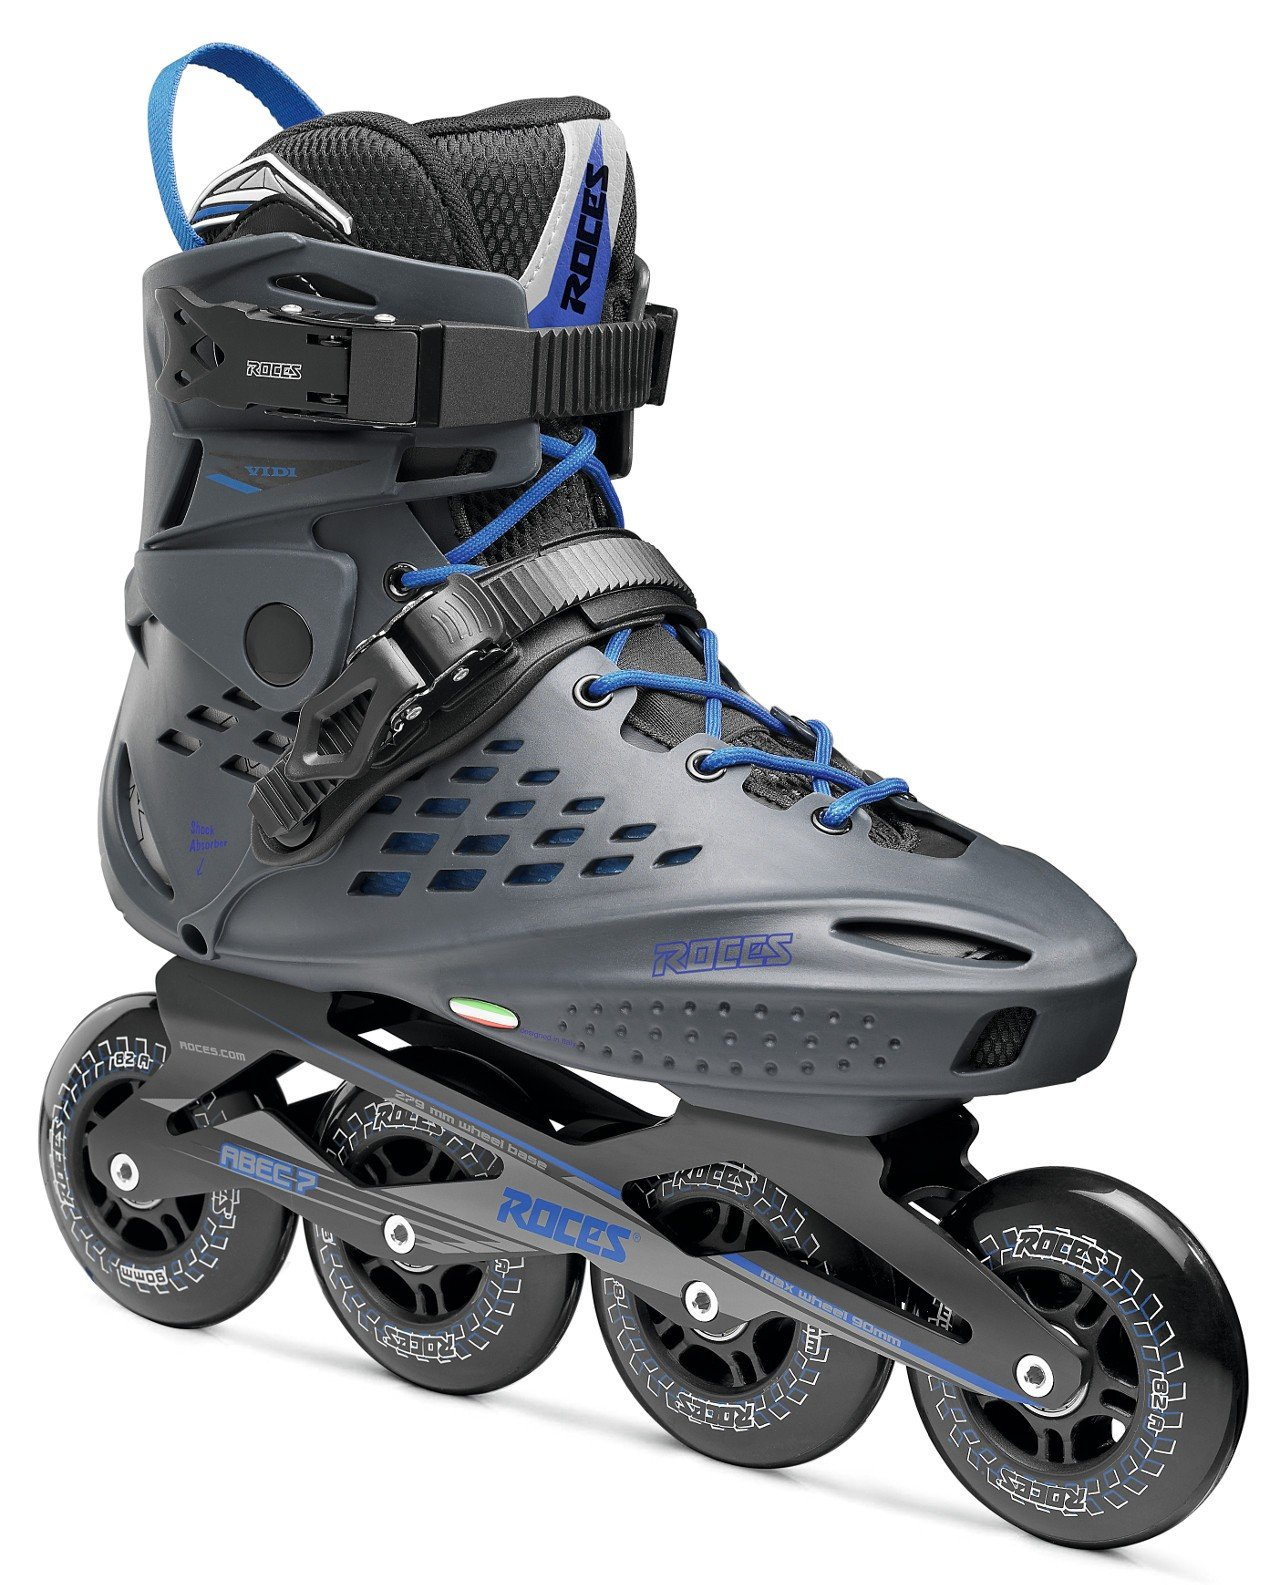 Roces 400470 Men's Model Vidi Fitness Inline Skate, US 12, Charcoal/Strong Blue by Roces